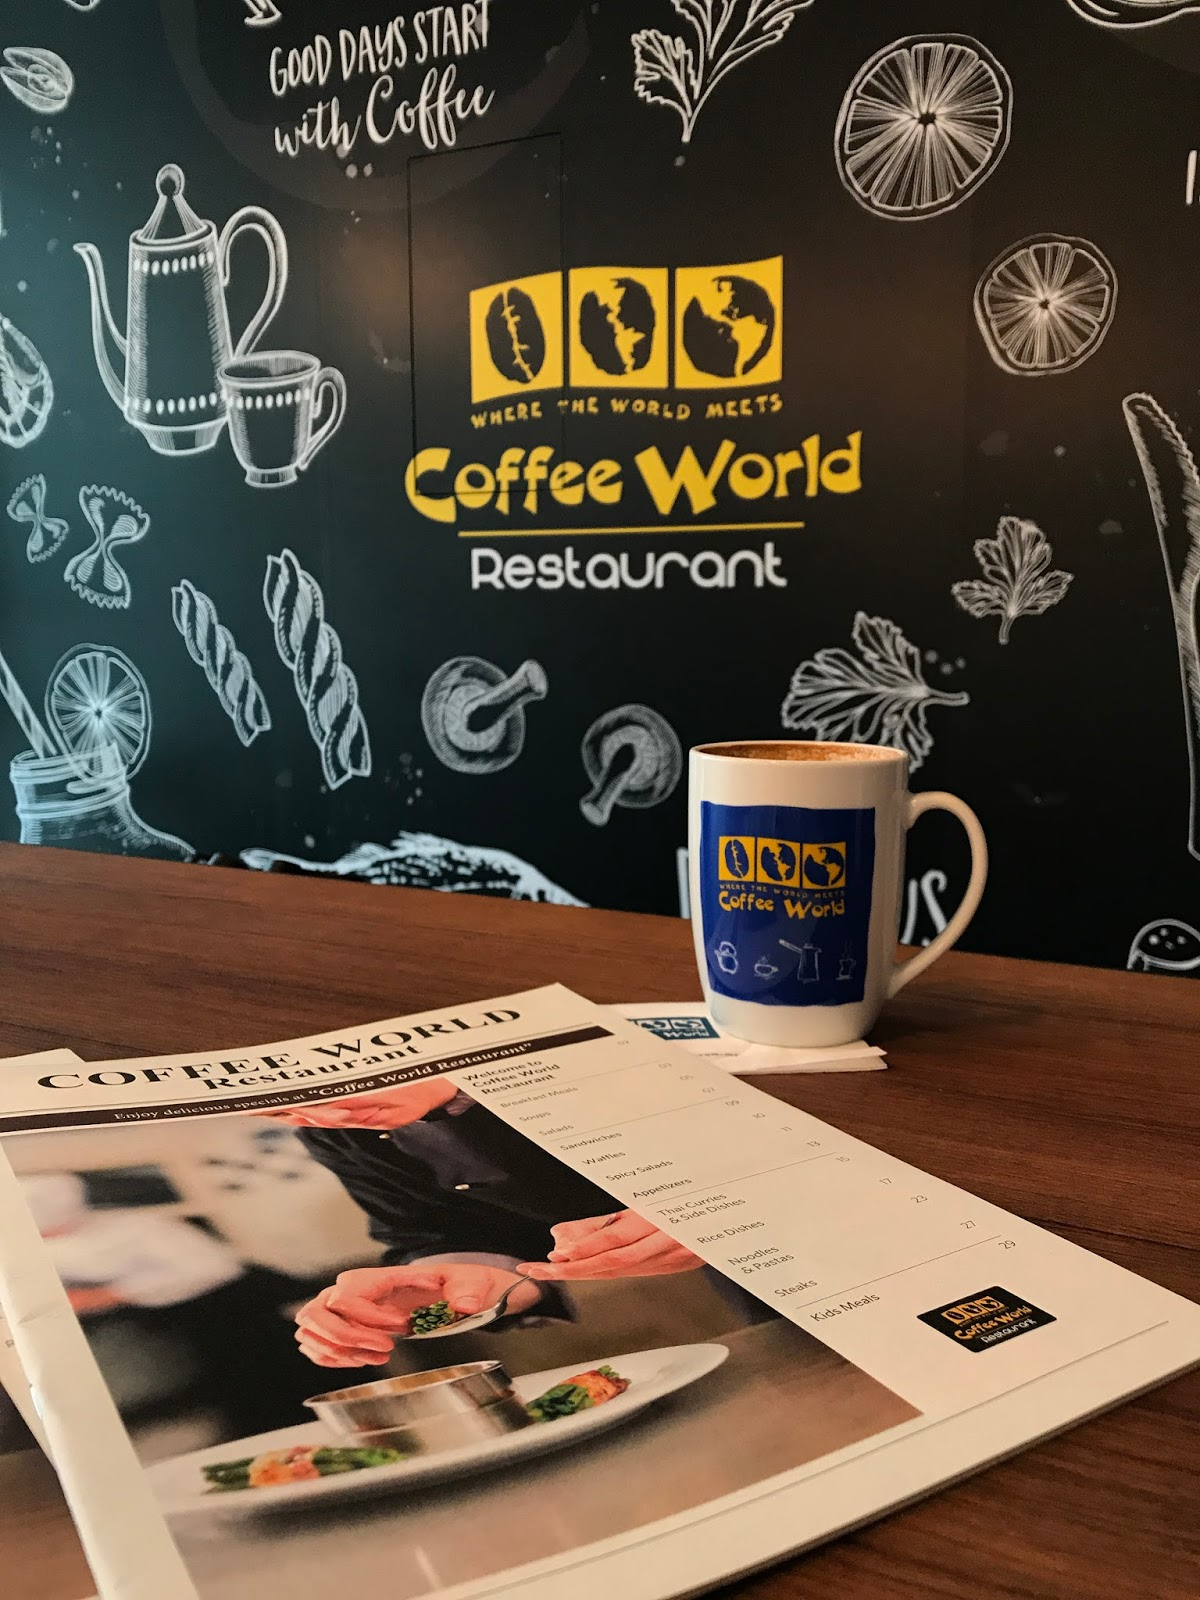 [Food Review] Coffee World Restaurant @ KL Gateway Mall. ~ More than just Coffee ~